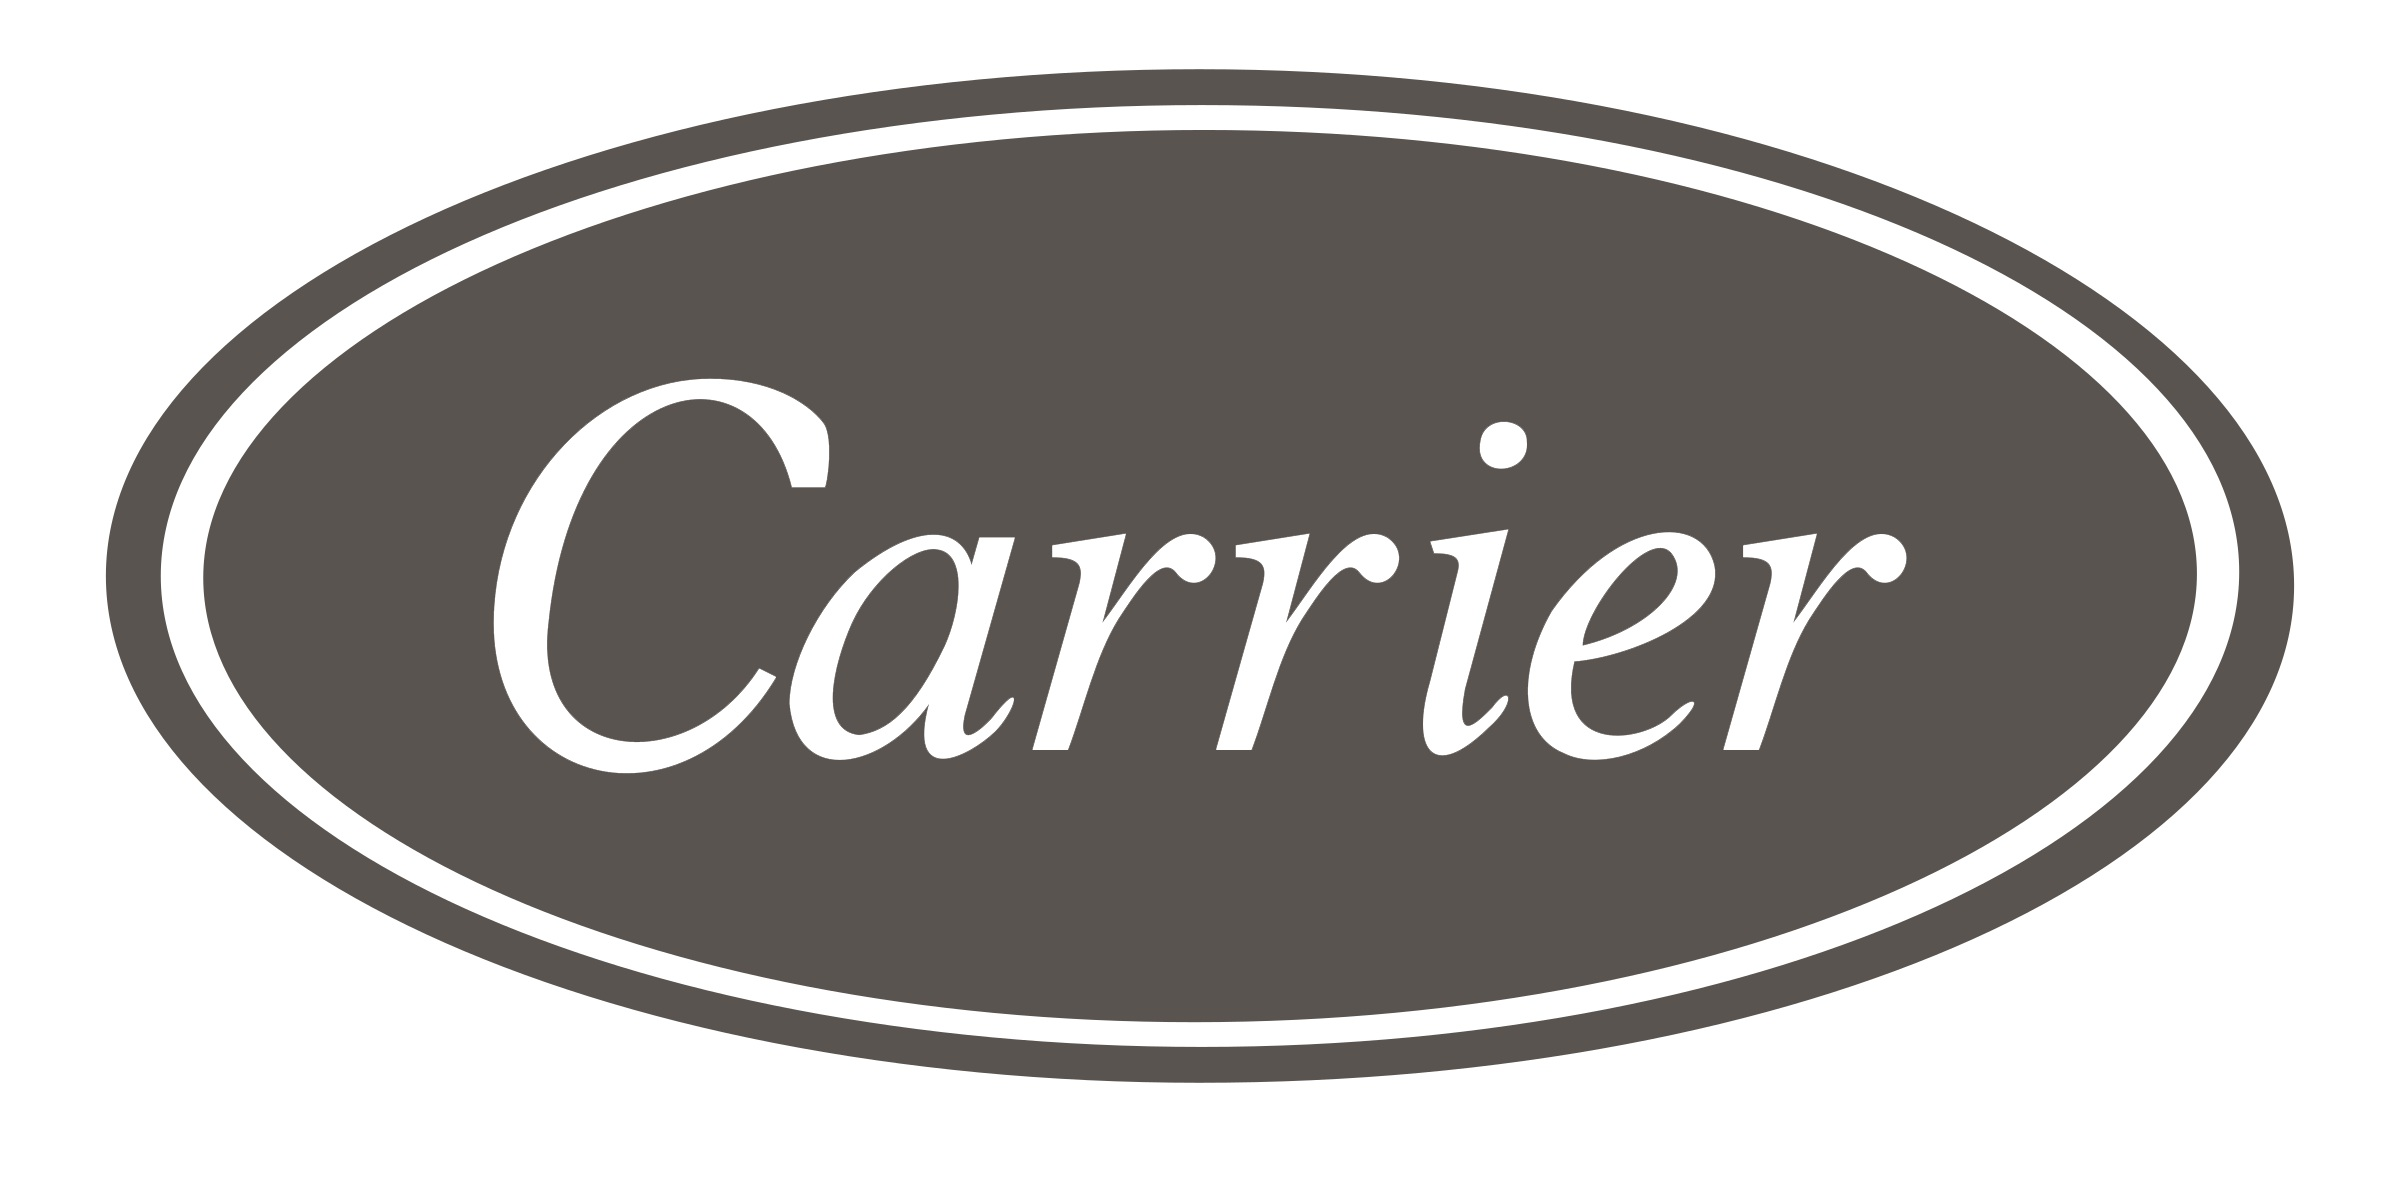 carrier-logo-png-transparent.jpg